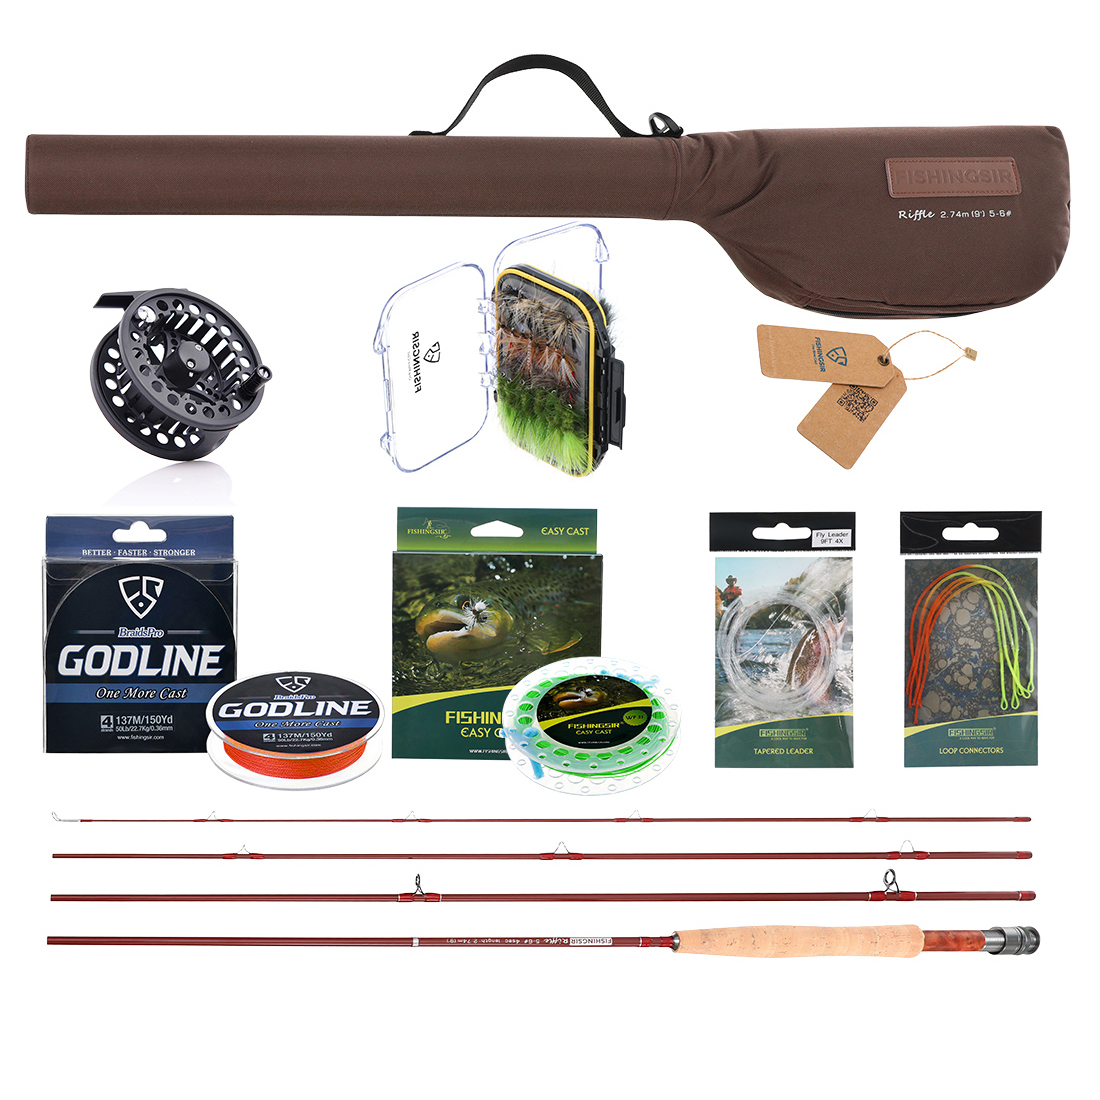 Fly Fishing Reels Rod 3/4 5/6 Pole Lures Line Fly Fishing Tackle Combo Kit Set Pesca Reel Wheel Lure Flies Wire Gear Accessories dream m19 multifunctional opie fishing reel bag fishing bags pole tackle military lure reel backpack fishing gear 33 13 23cm